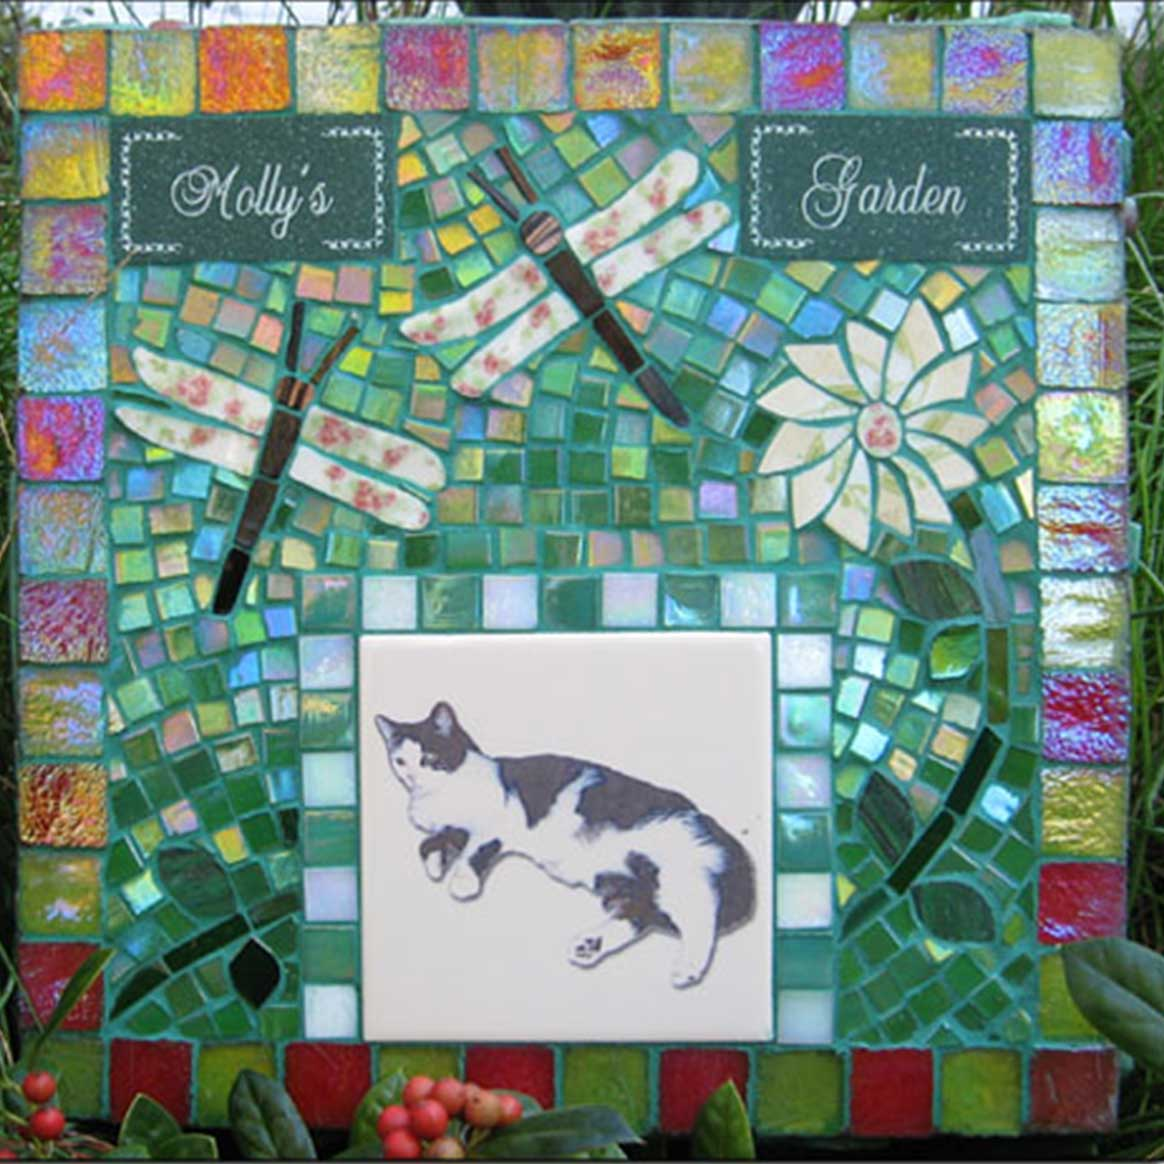 Mosaic Pet Portrait Memorial Stone of Cat Molly's Garden by Water's End Studio Artist Linda Solby